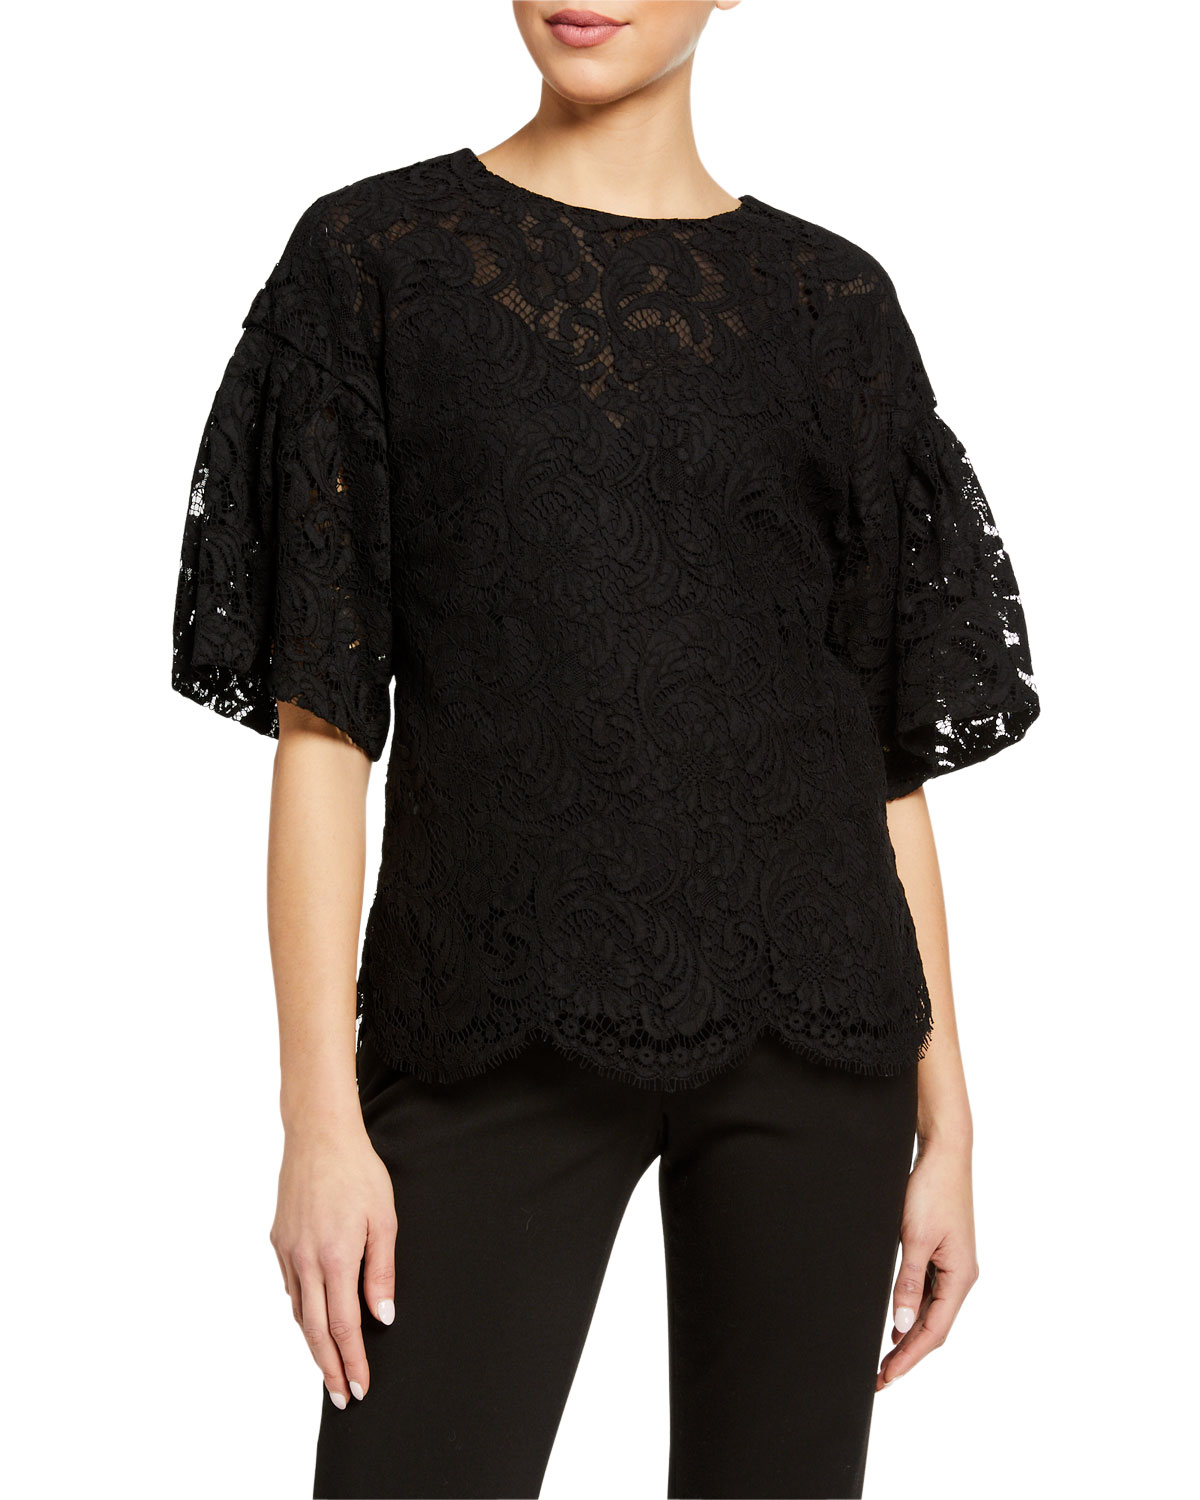 Adam Lippes Tops FLUTTER SLEEVE CORDED LACE TOP